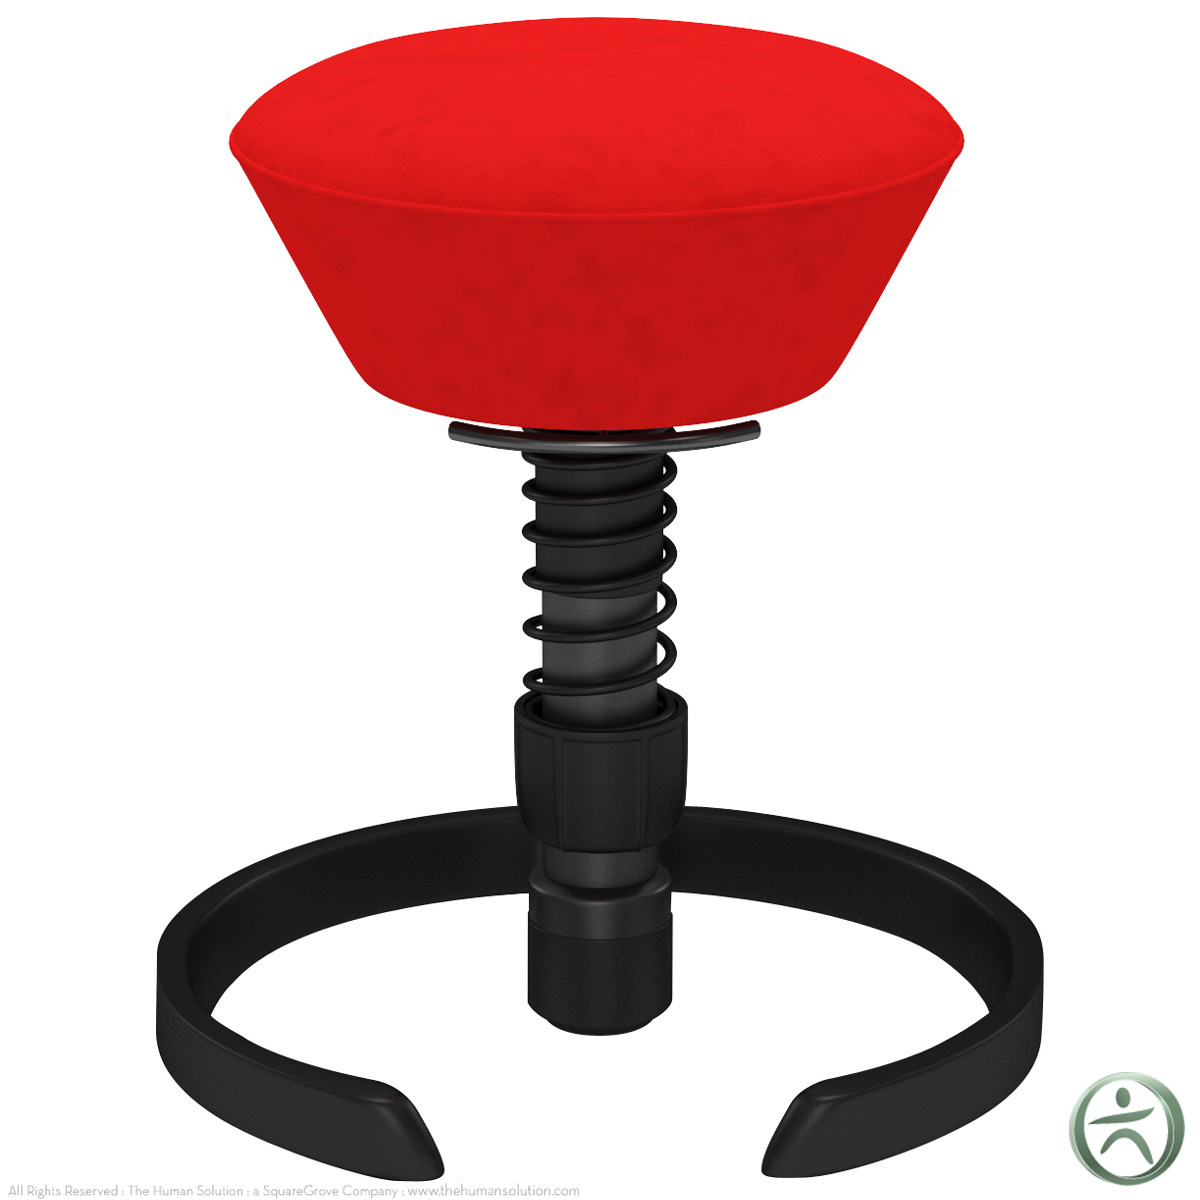 Swopper Chair Design Your Own